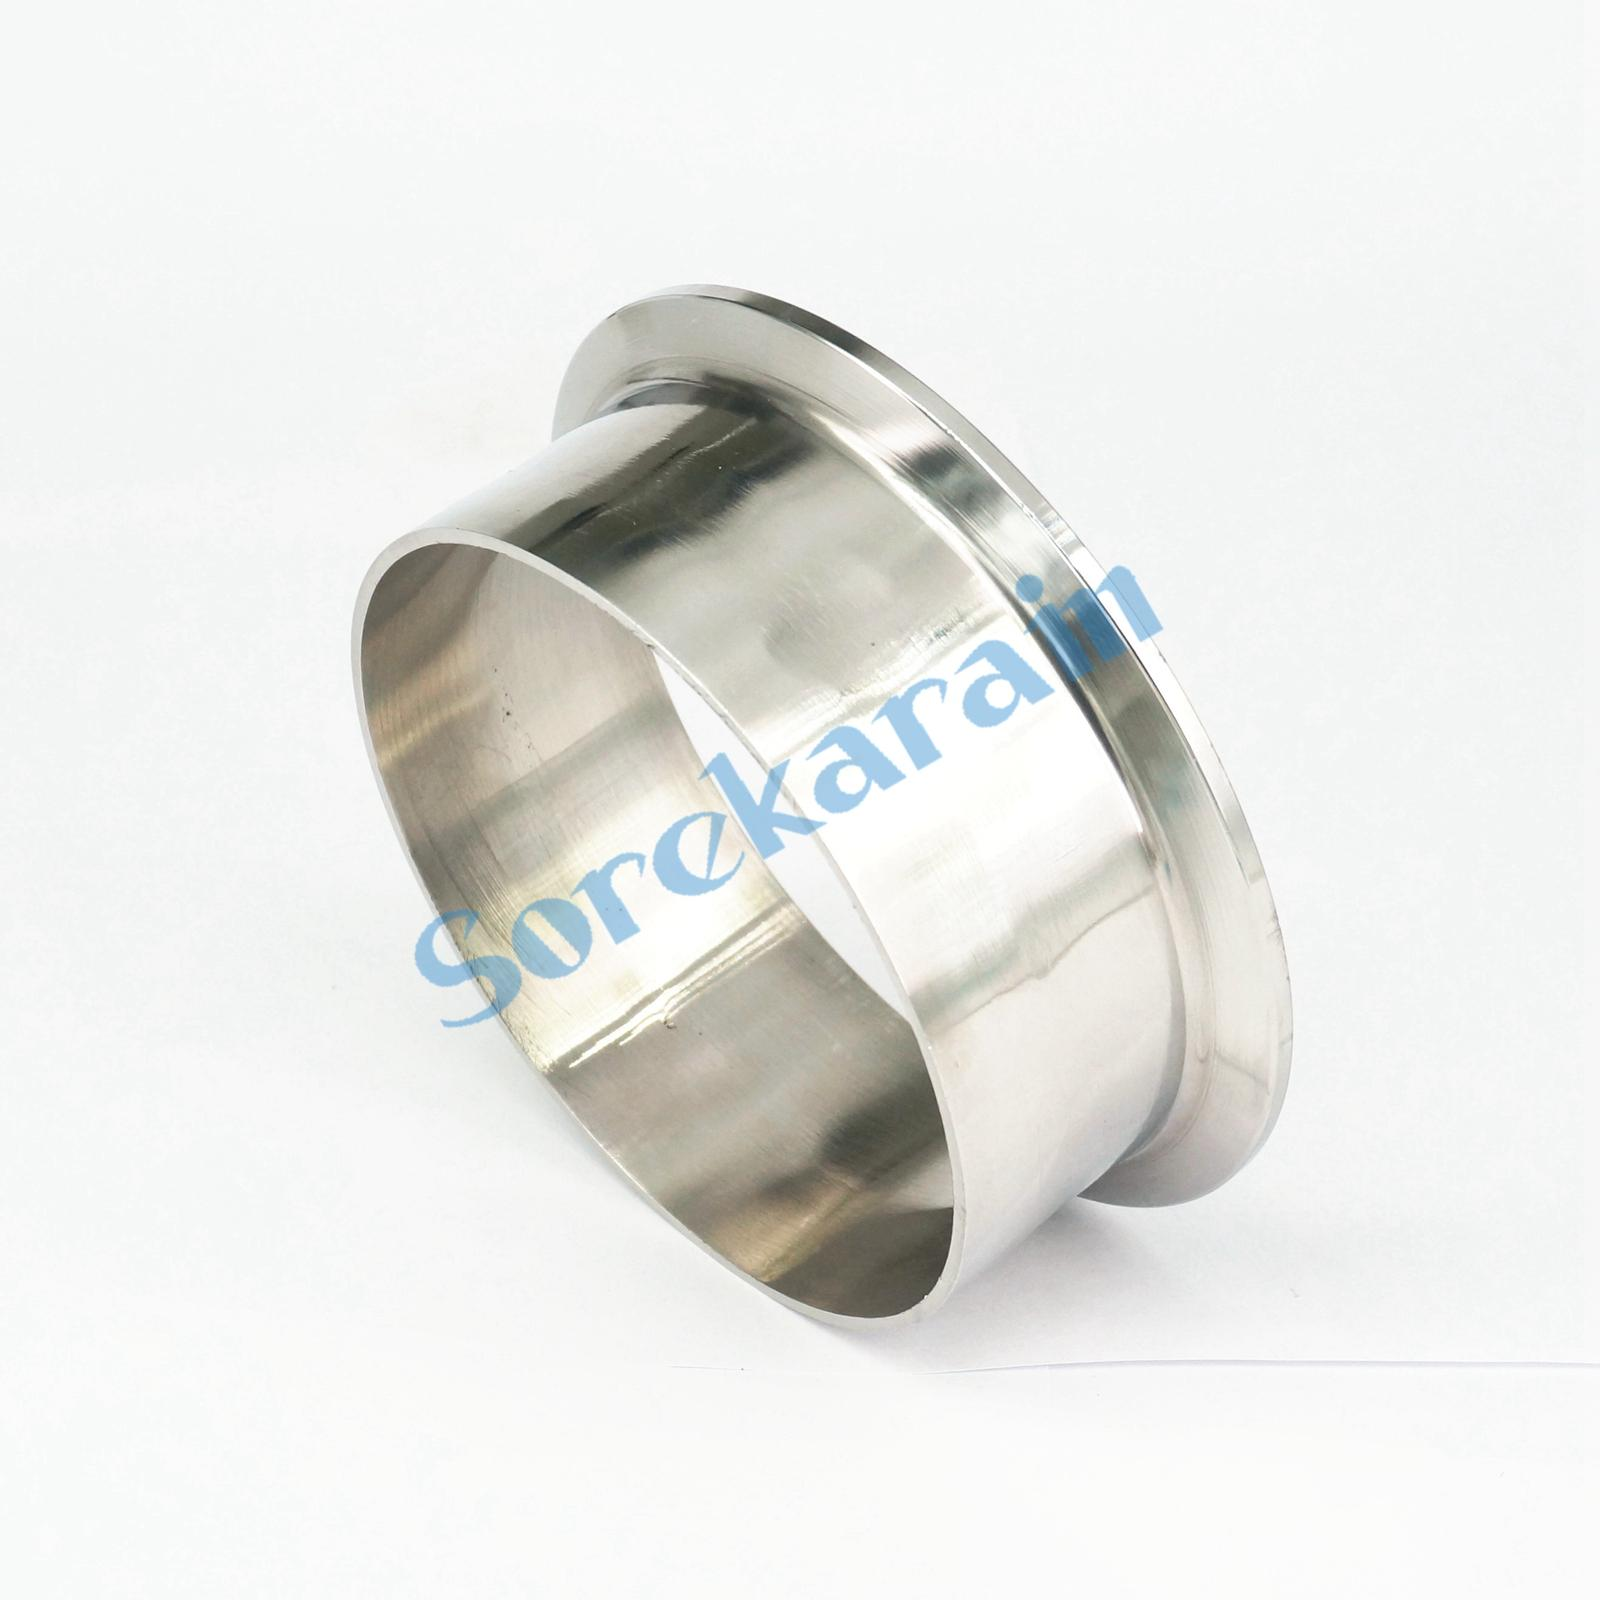 102mm Tube O/D x 4 Tri Clamp x 40mm Height 304 Stainless Steel Sanitary Weld Ferrule Connector Pipe Fitting Home Brew Beer Wine double ferrule tube pipe fittings threaded male connector stainless steel pipe fitting